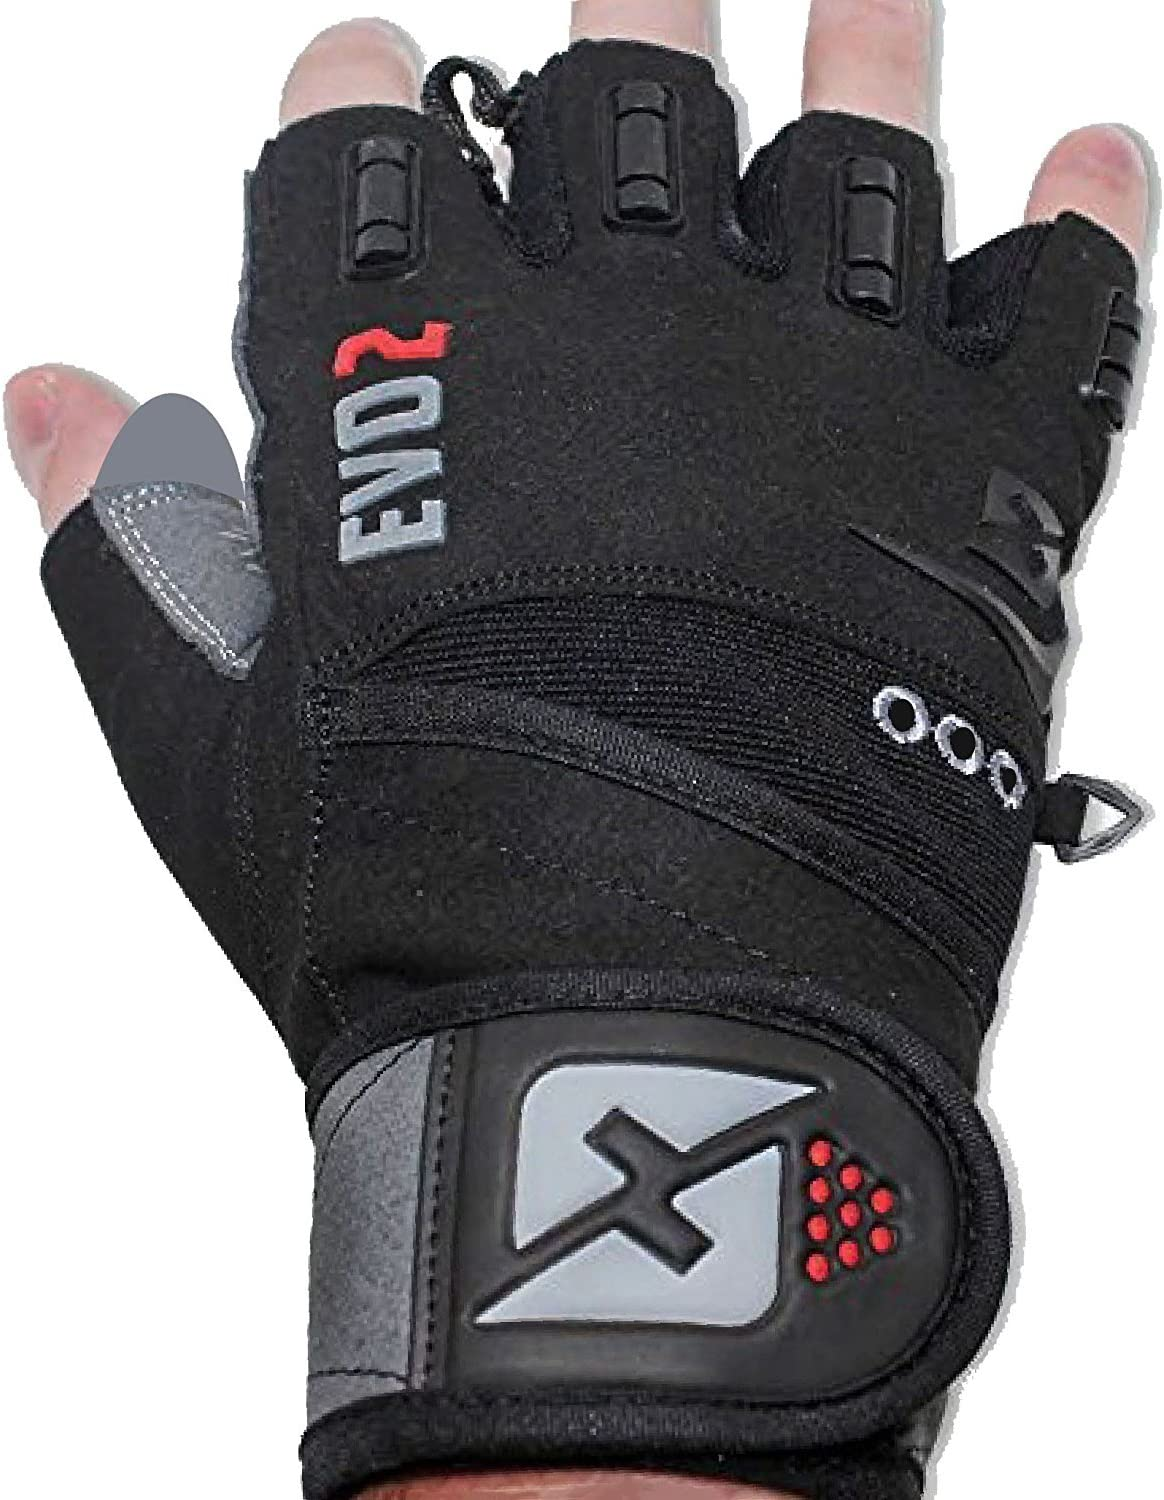 skott Evo 2 Weightlifting Gloves with Integrated Wrist Wrap Support-Double Stitching for Extra Durability-Get Ripped with The Best Body Building Fitness and Exercise Accessories : Sports & Outdoors